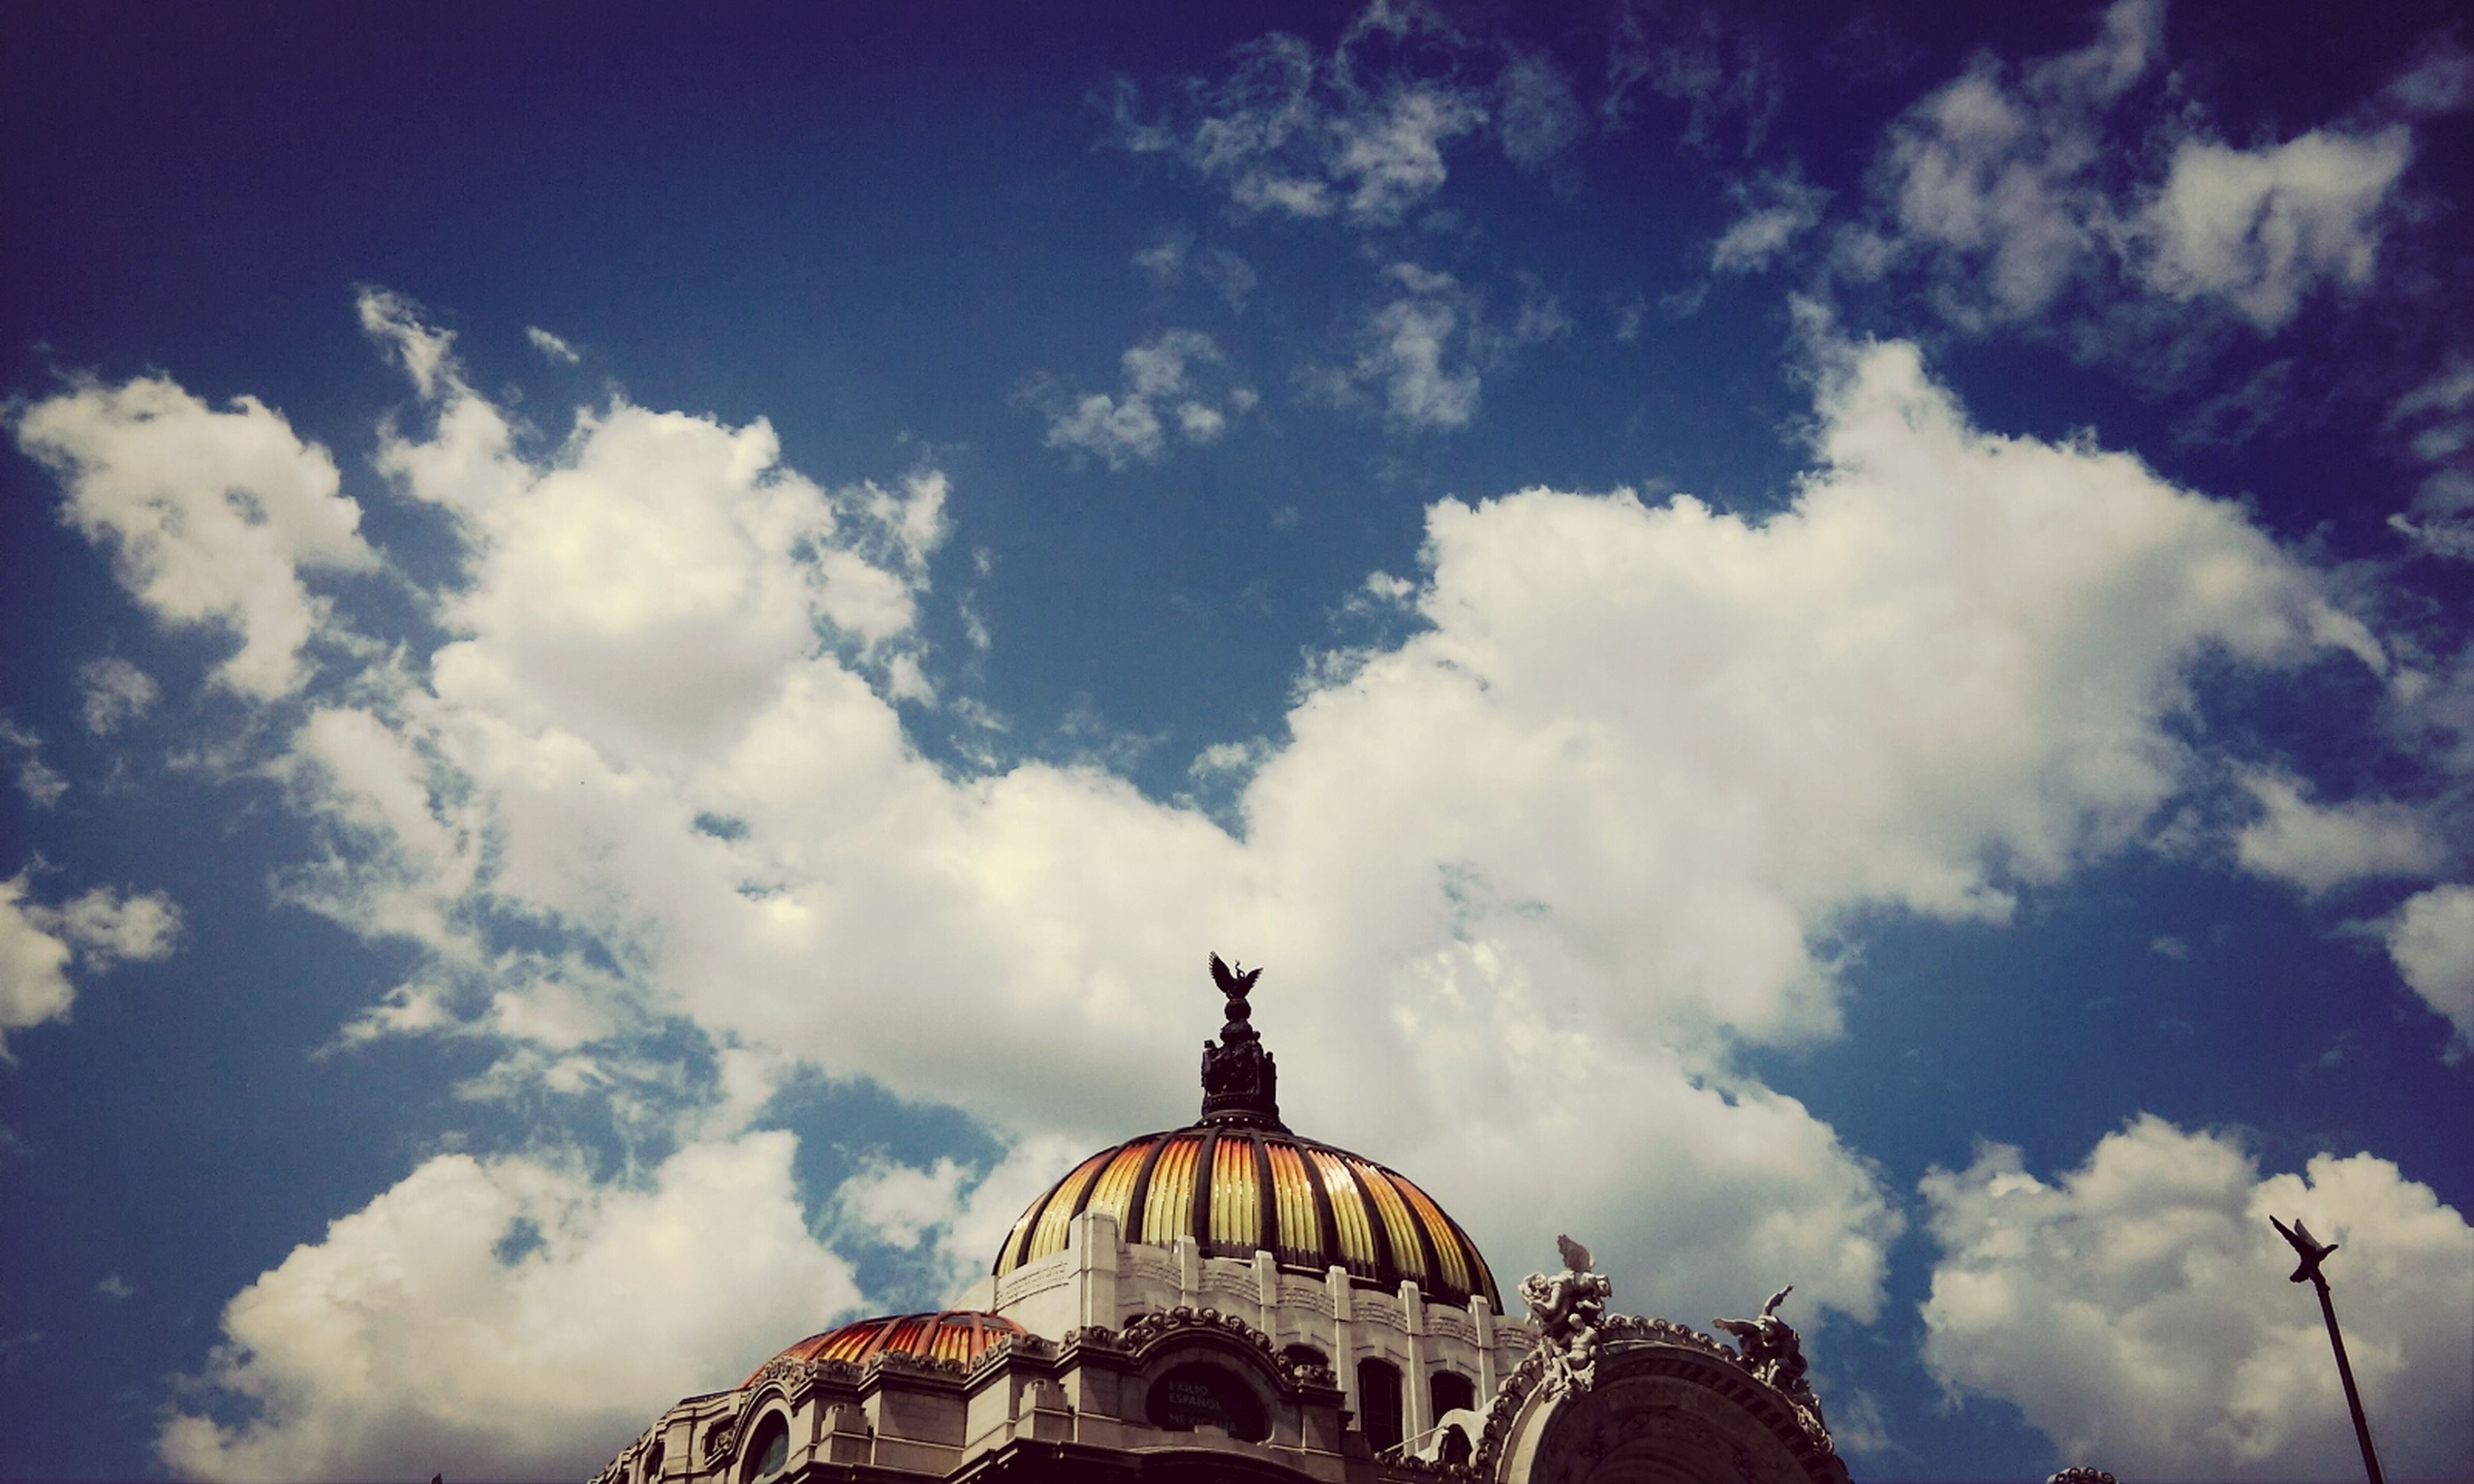 architecture, low angle view, built structure, dome, sky, building exterior, place of worship, cloud - sky, religion, spirituality, famous place, travel destinations, high section, cloudy, cathedral, travel, international landmark, tourism, church